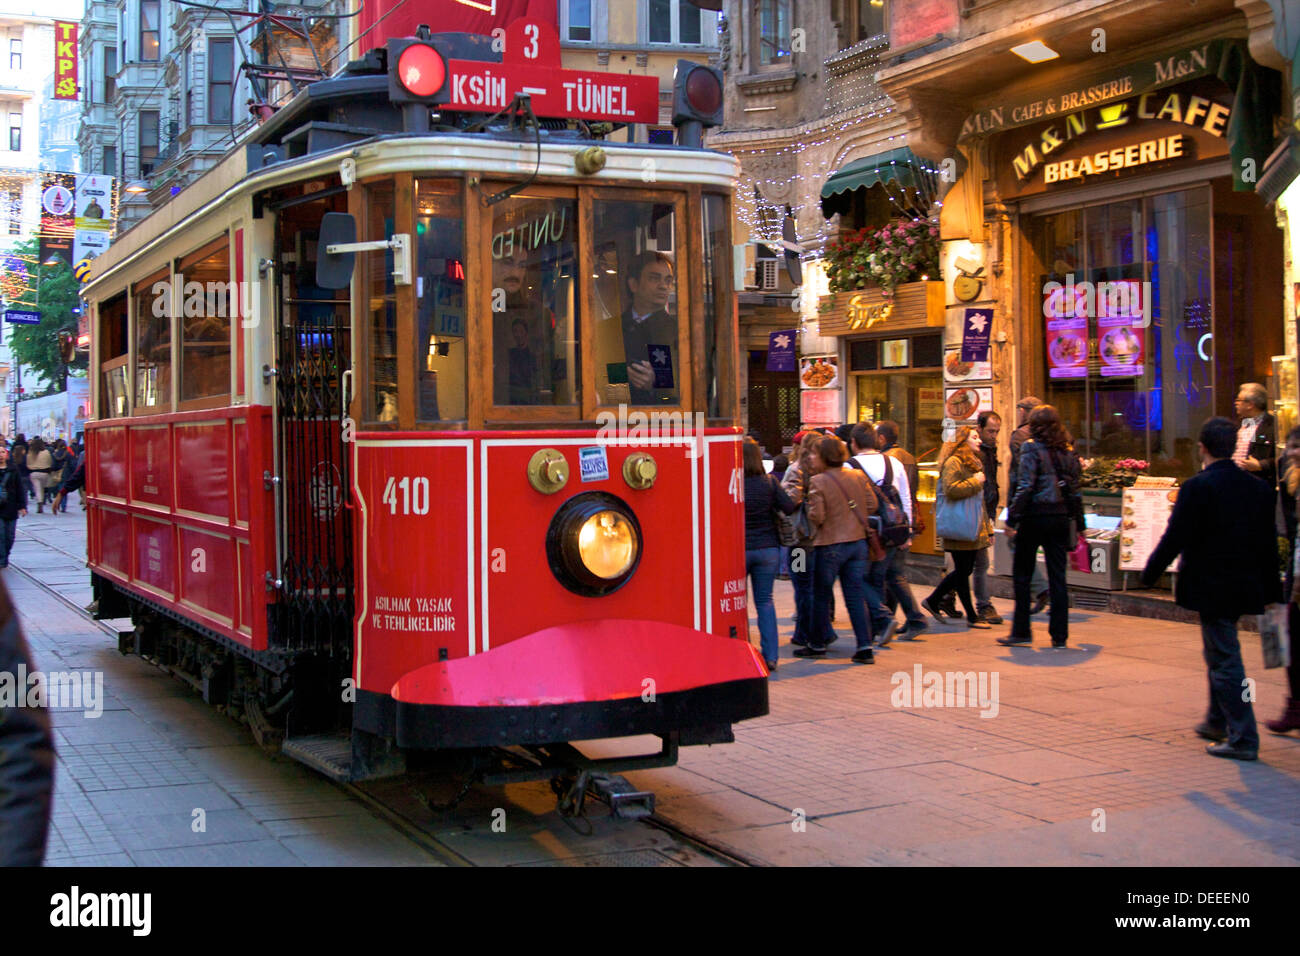 Historic red tram on Istiklal Caddesi, Beyoglu, Istanbul, Turkey, Europe - Stock Image